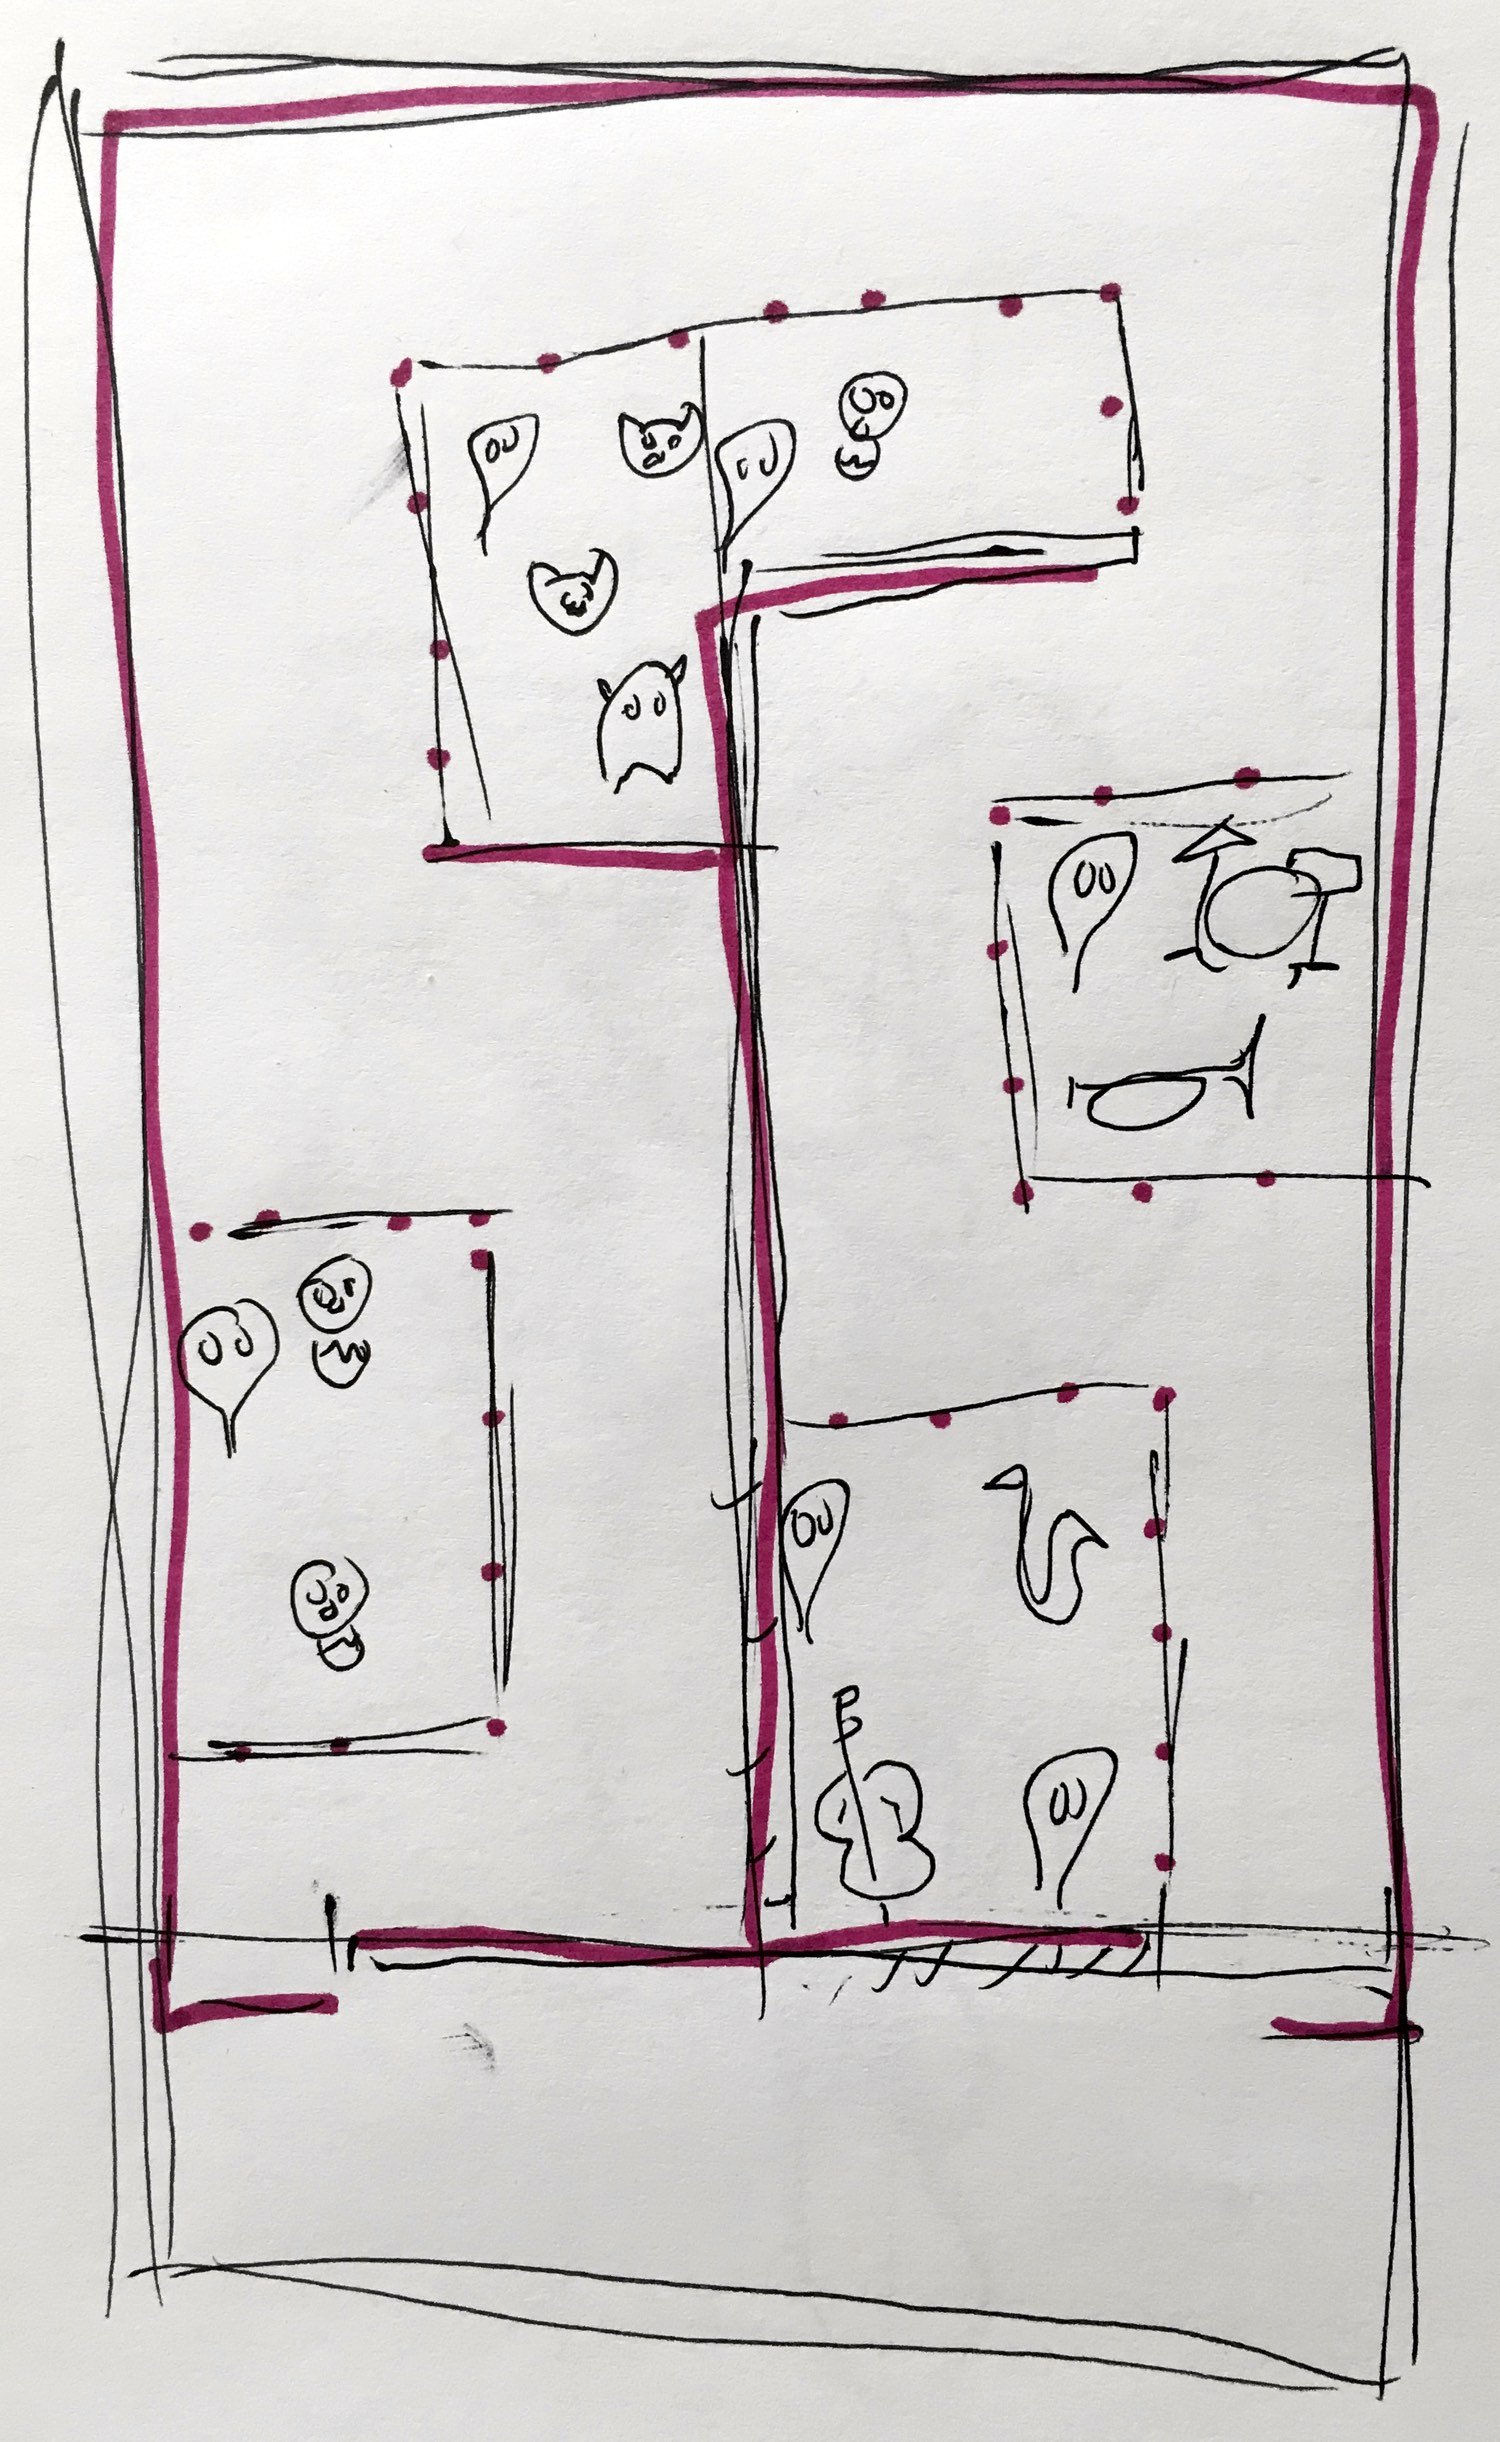 A rough sketch of the revised show layout